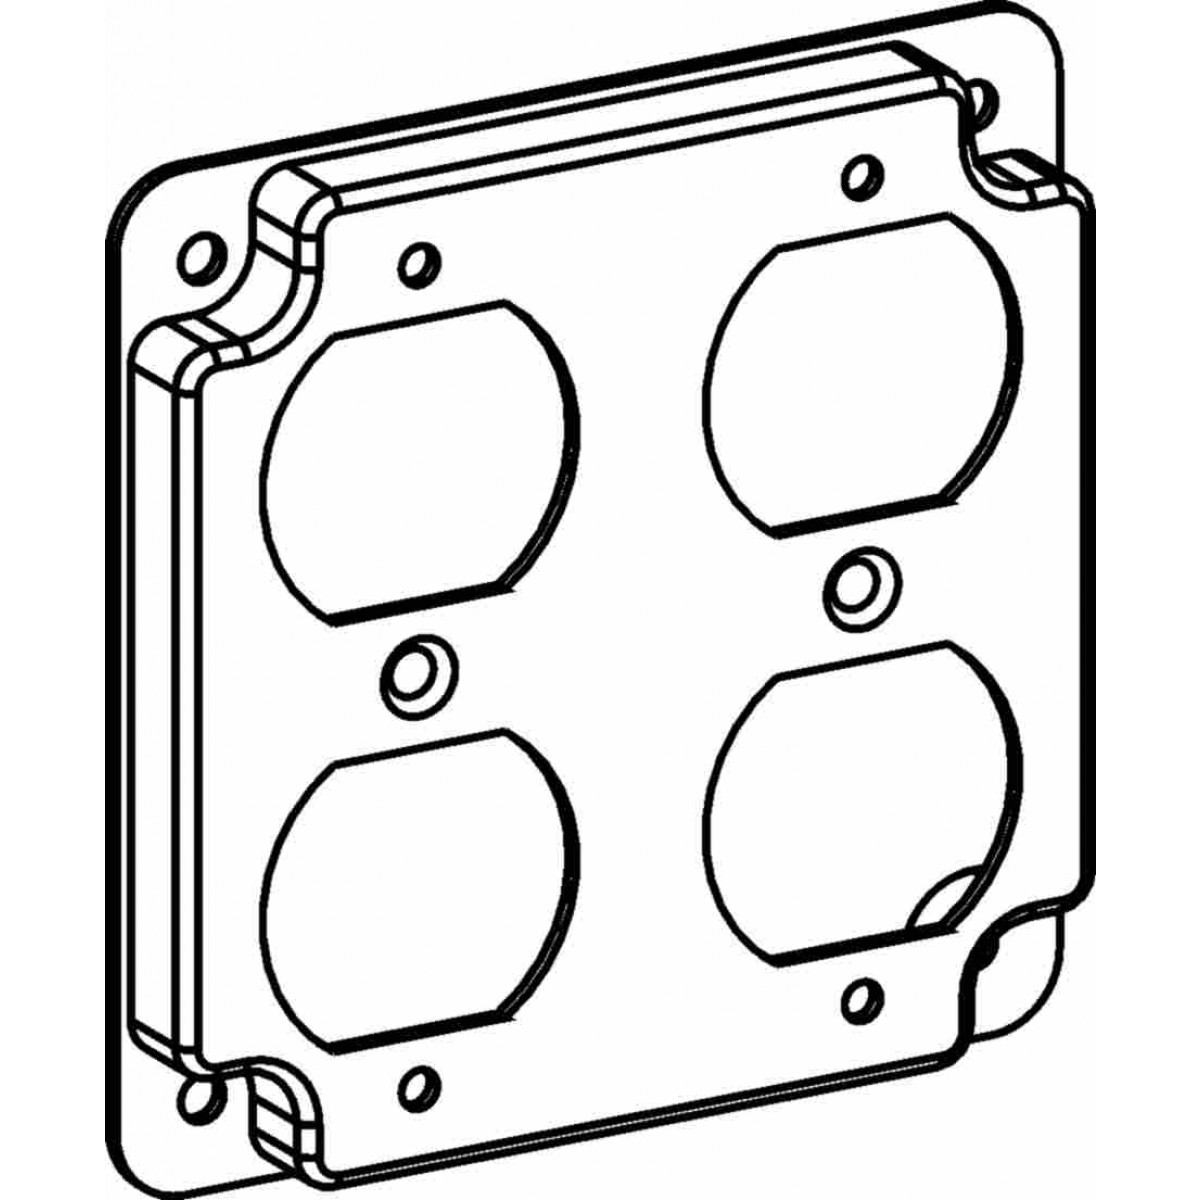 4422 - 4s industrial covers - 4s rings and covers - electrical box covers and rings